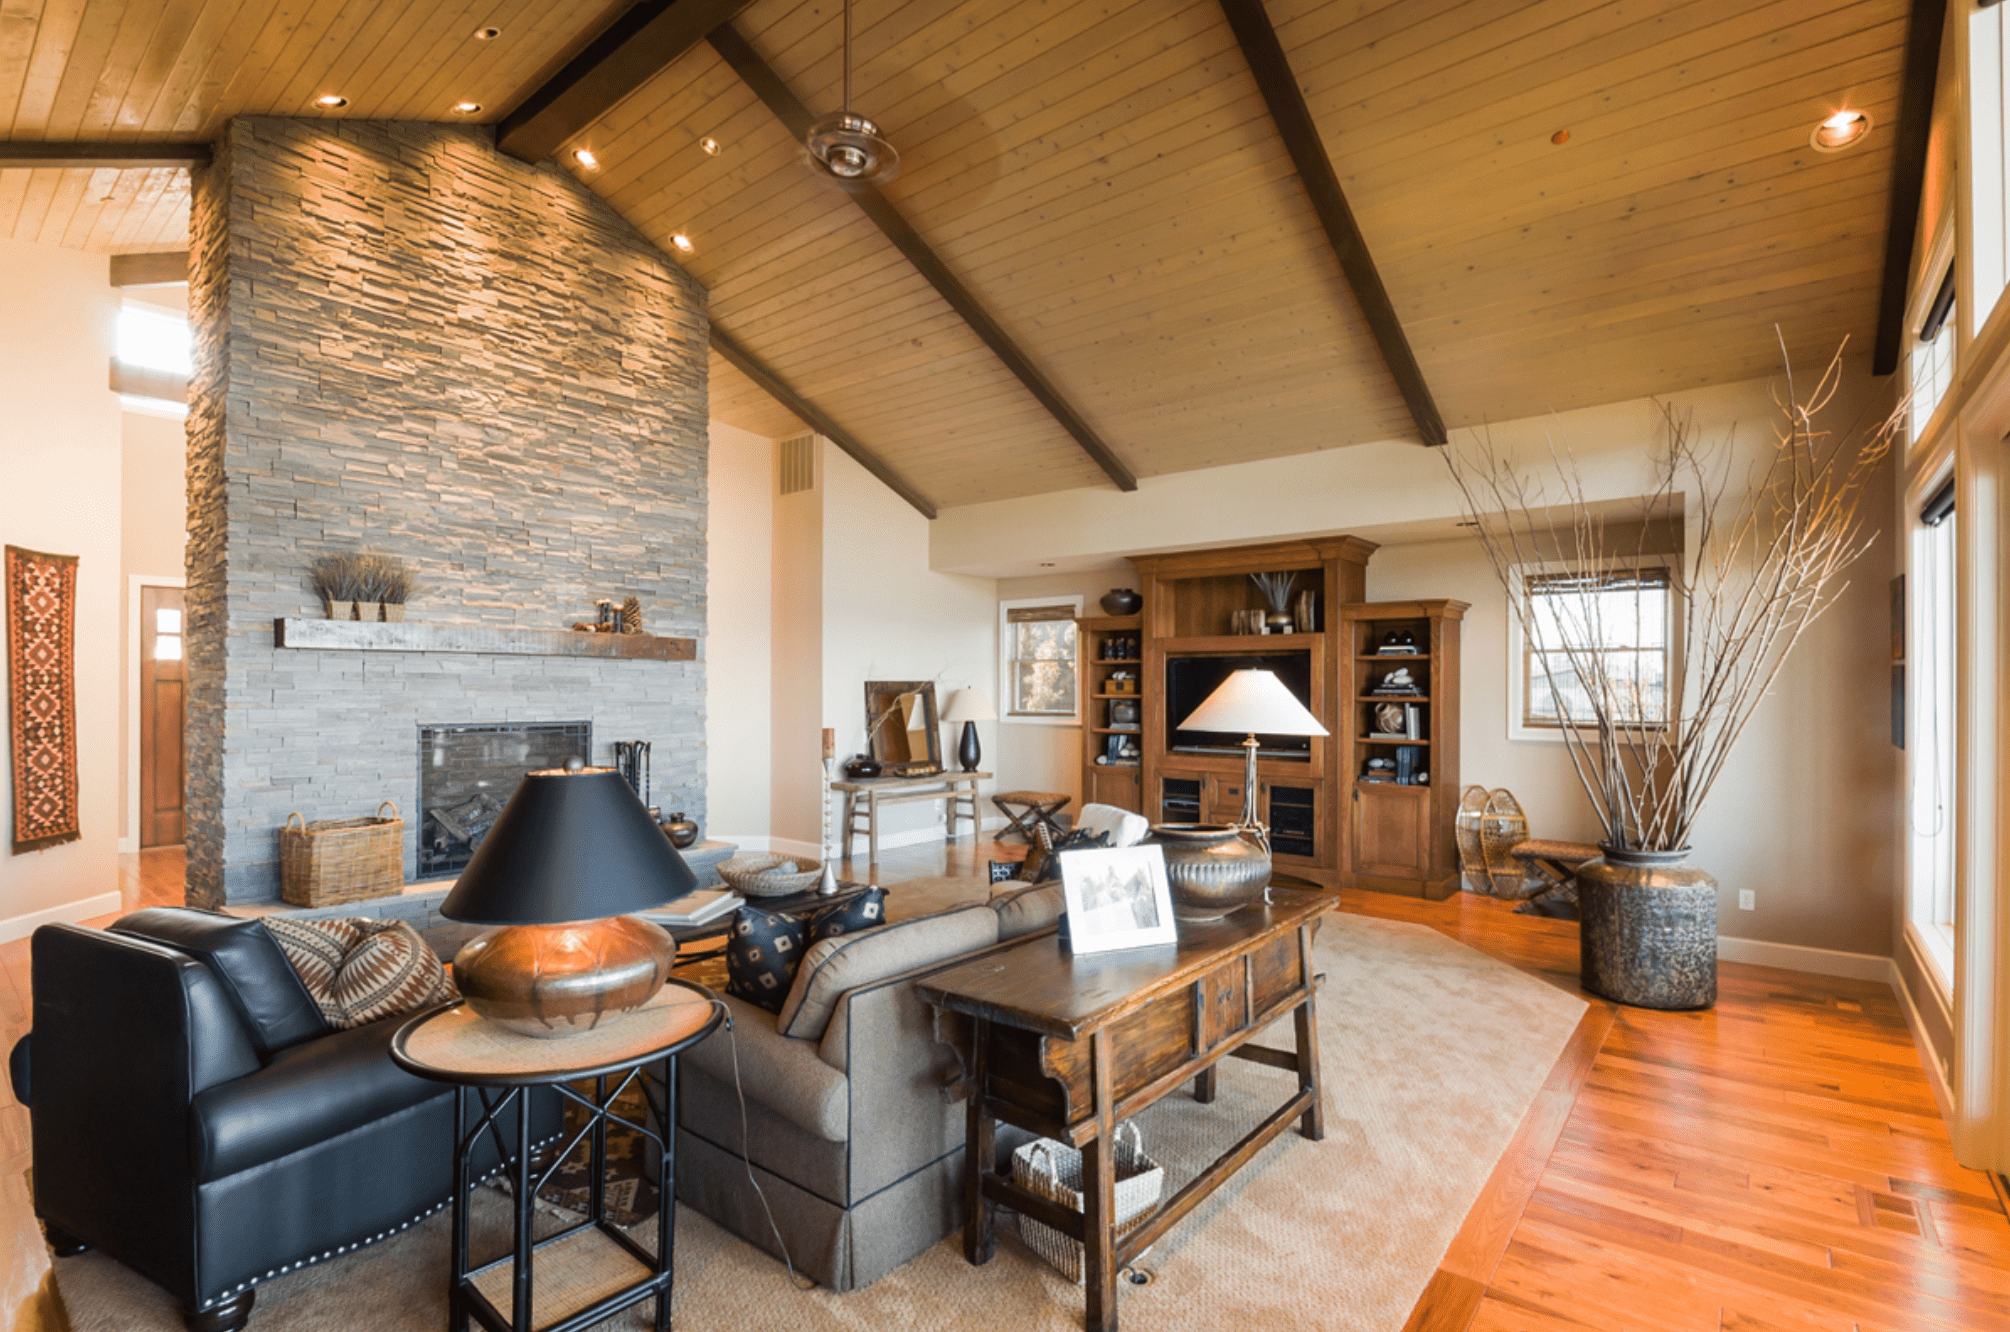 Recessed lights in wooden, A-frame style living room in earthy color palette